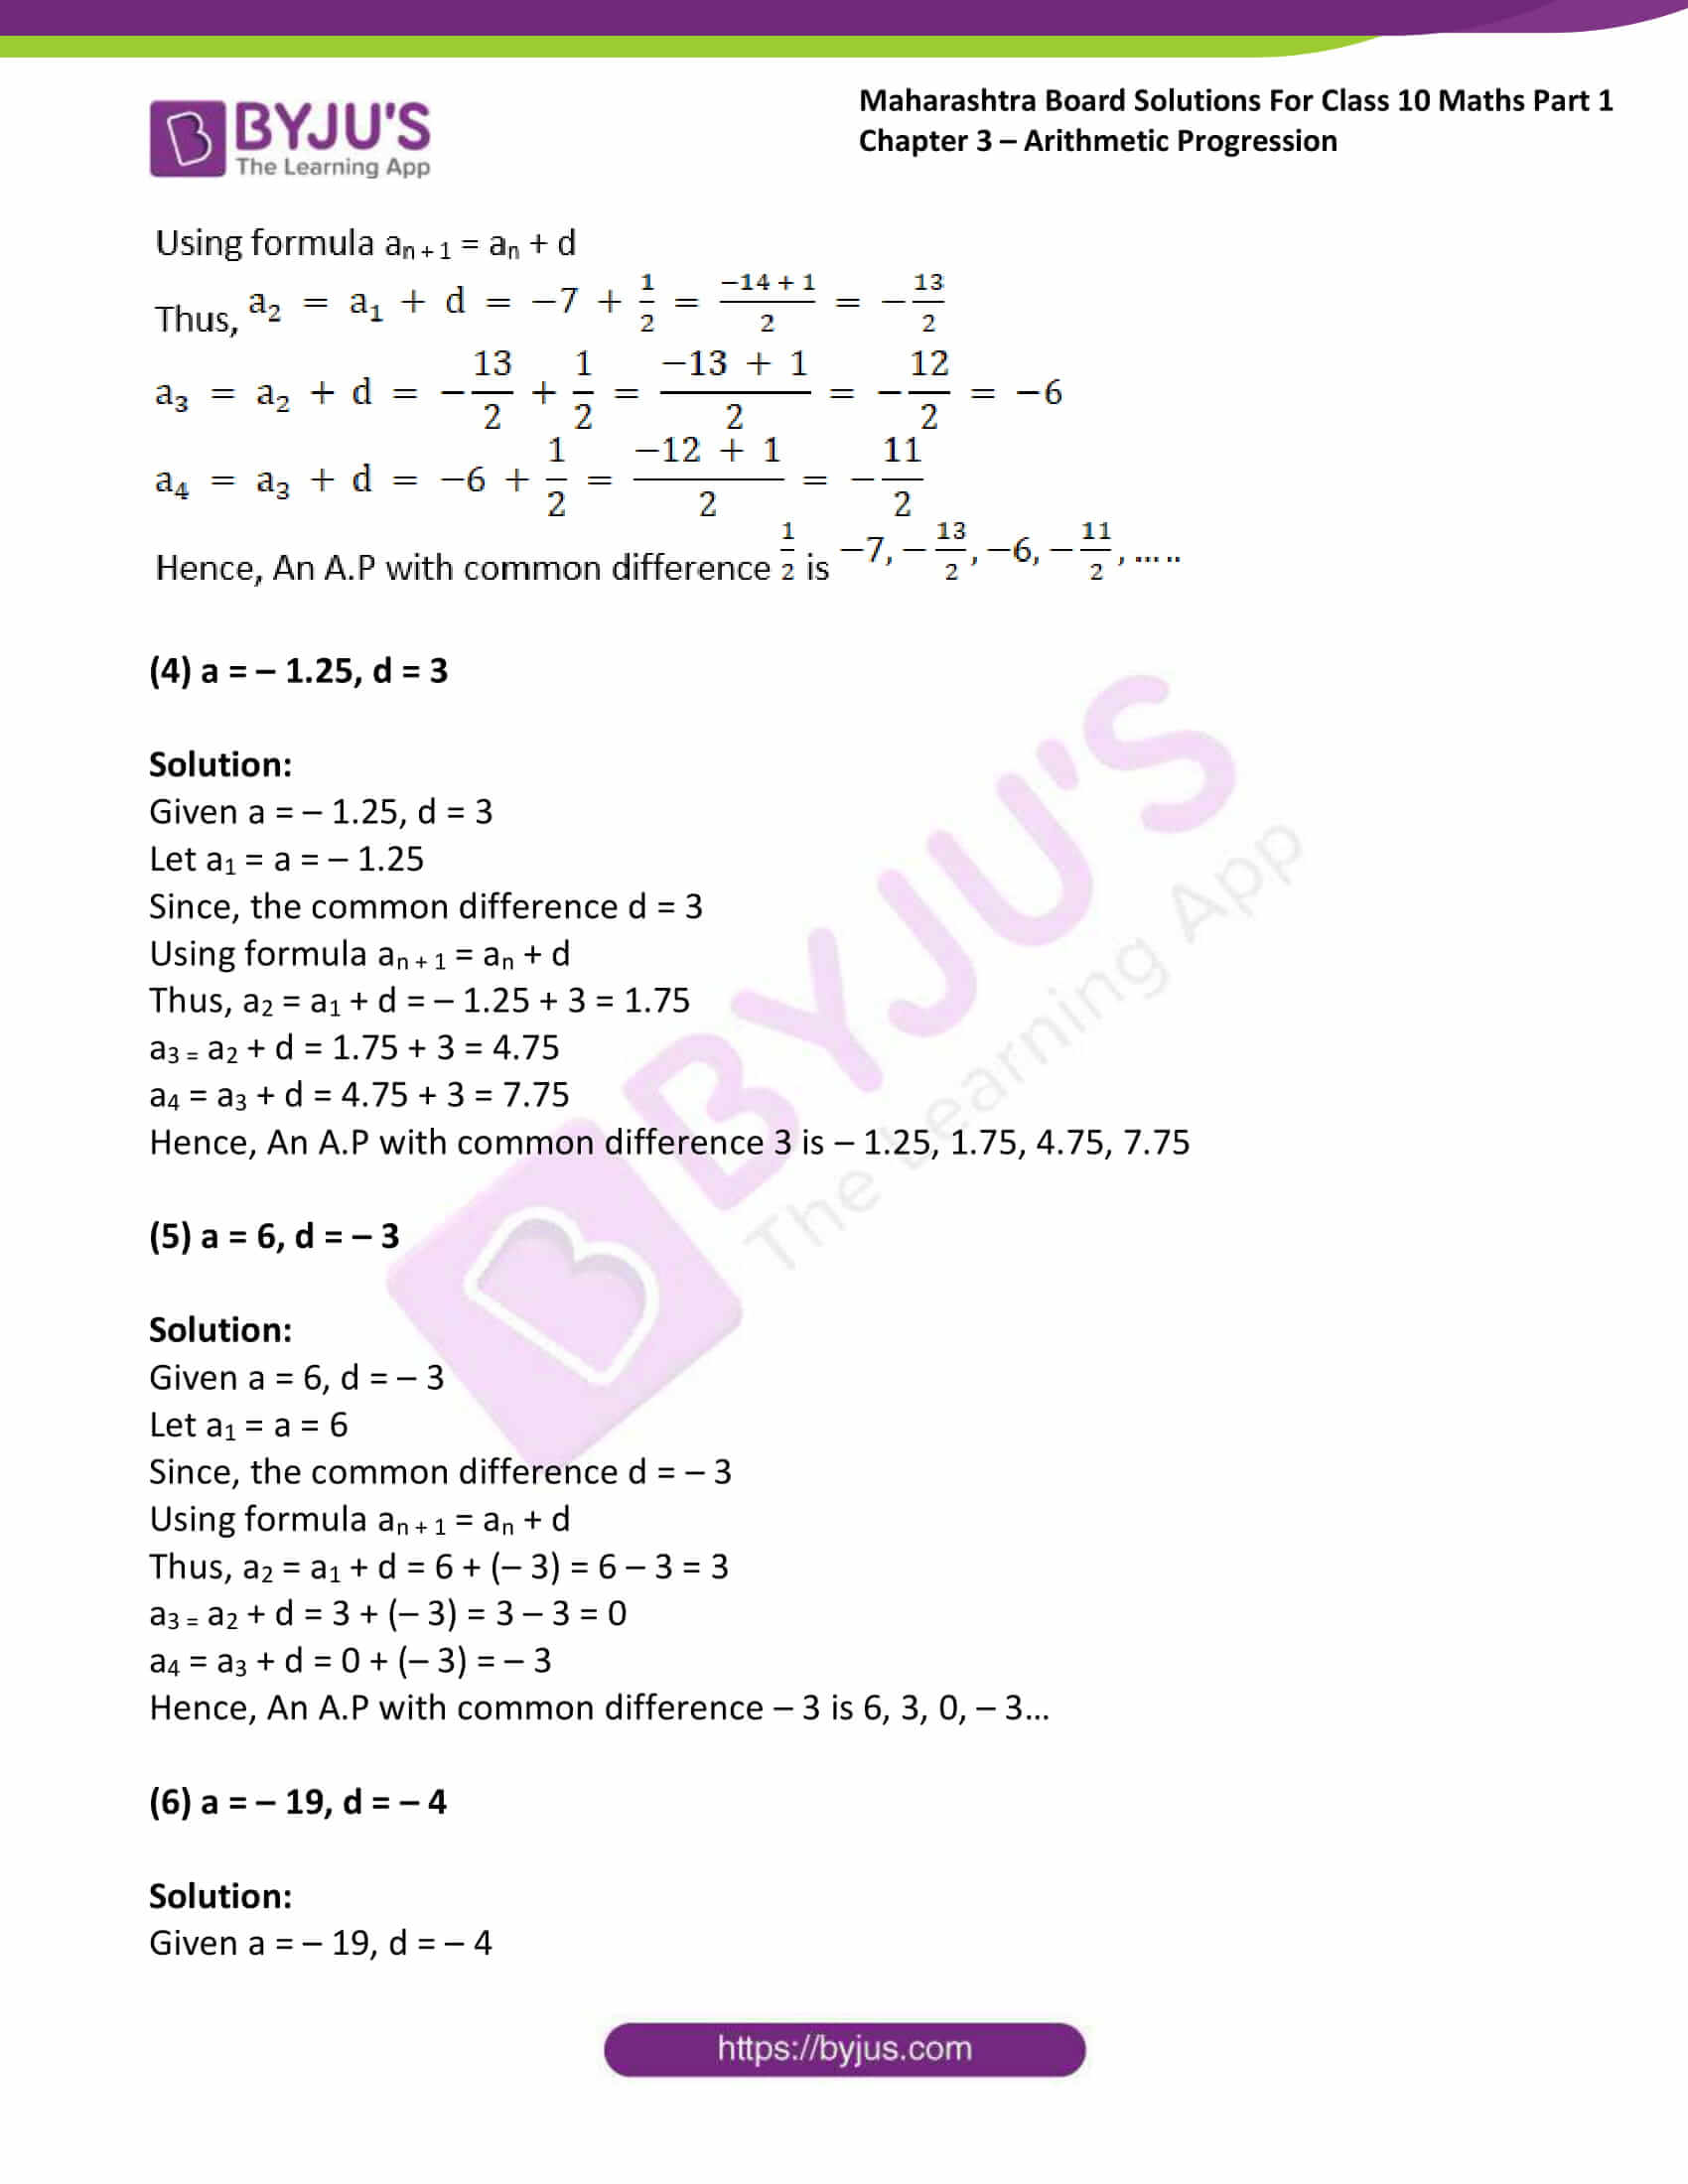 msbshse solutions class 10 maths part 1 chapter 3 05